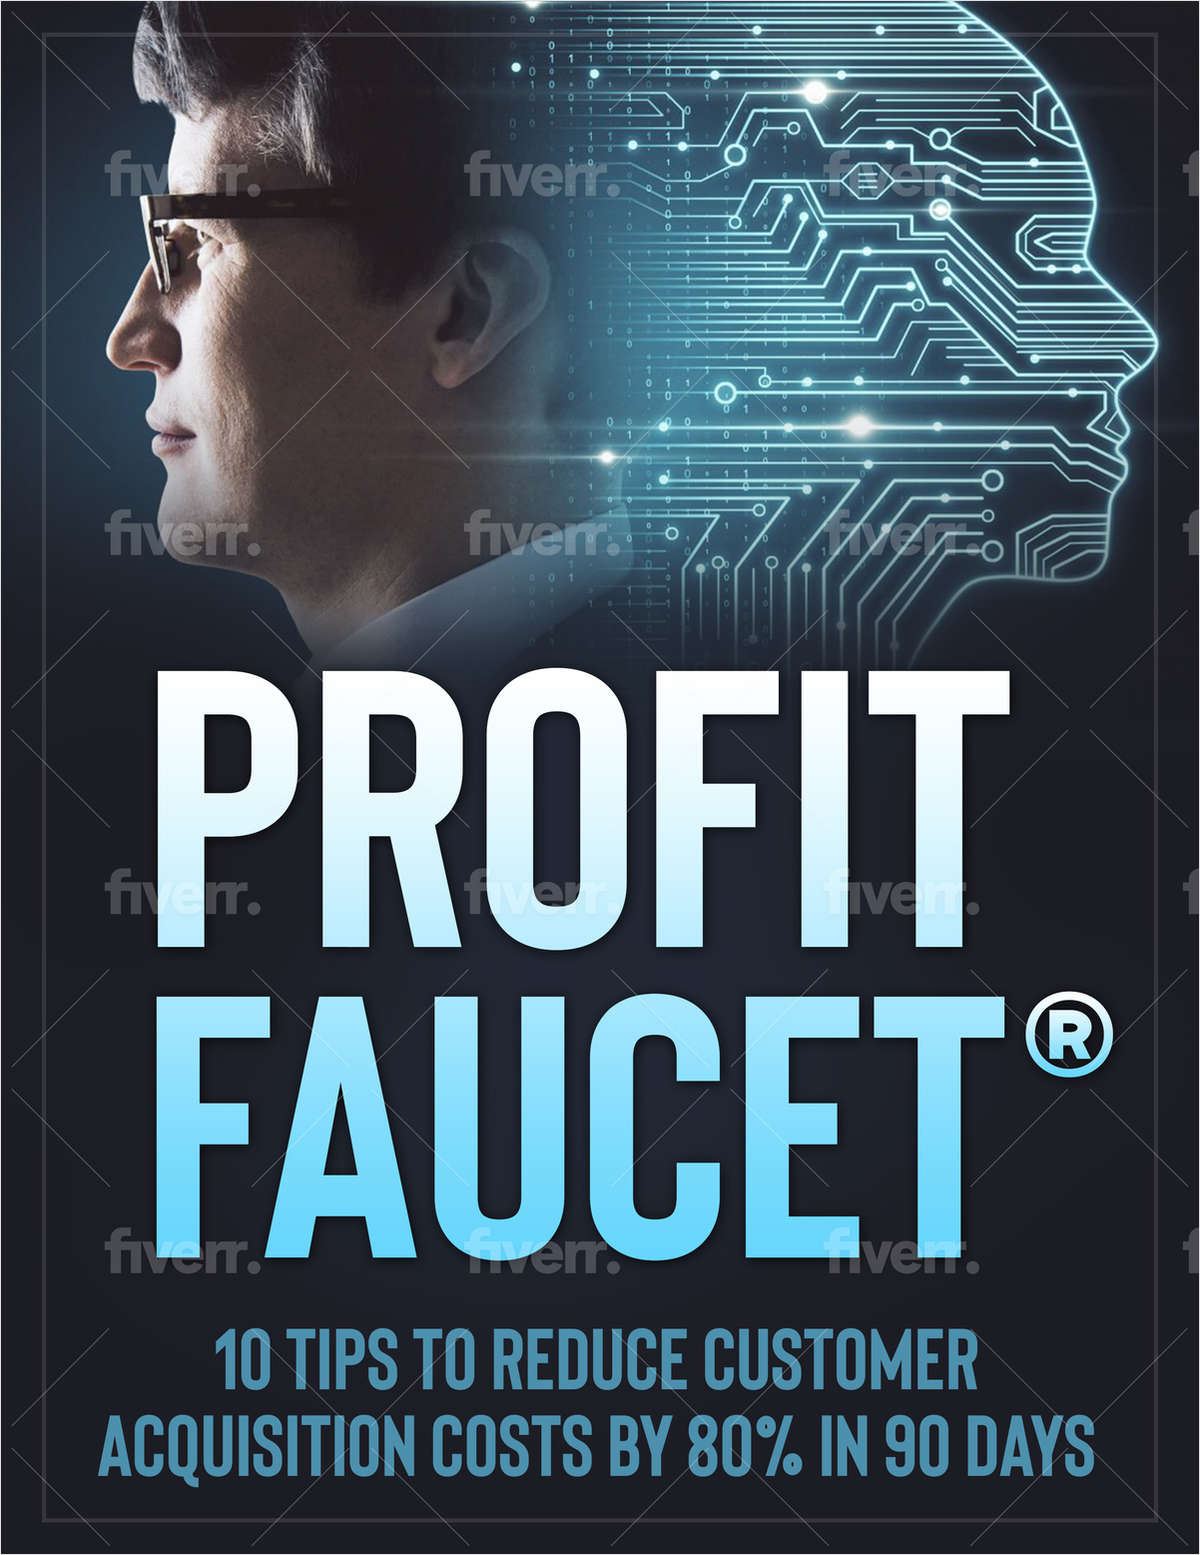 Profit Faucet: 10 Tip To Reduce Your Customer Acquisition Costs by 80% in 90 Days